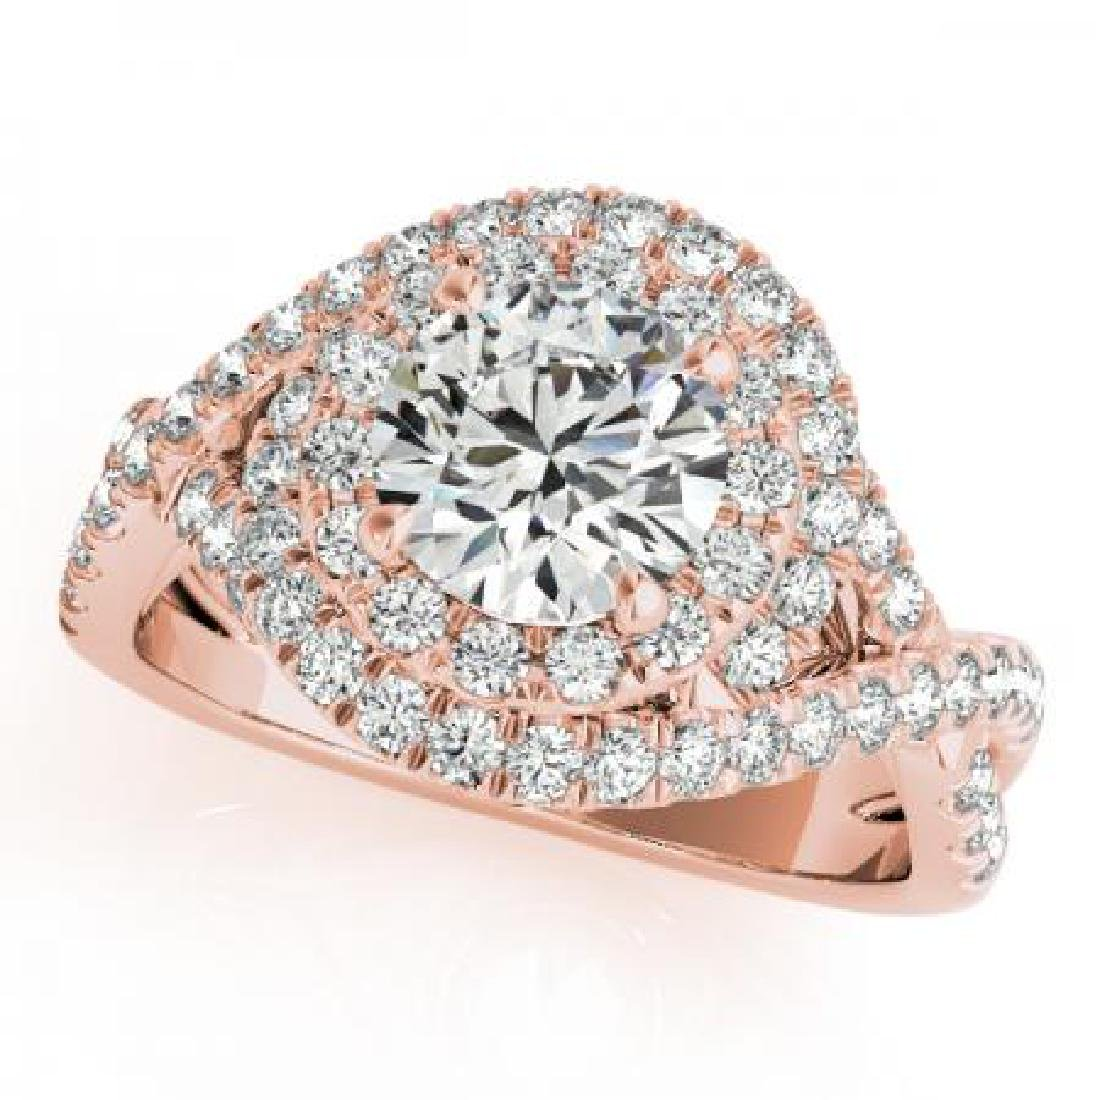 CERTIFIED 18K ROSE GOLD 1.54 CT G-H/VS-SI1 DIAMOND HALO